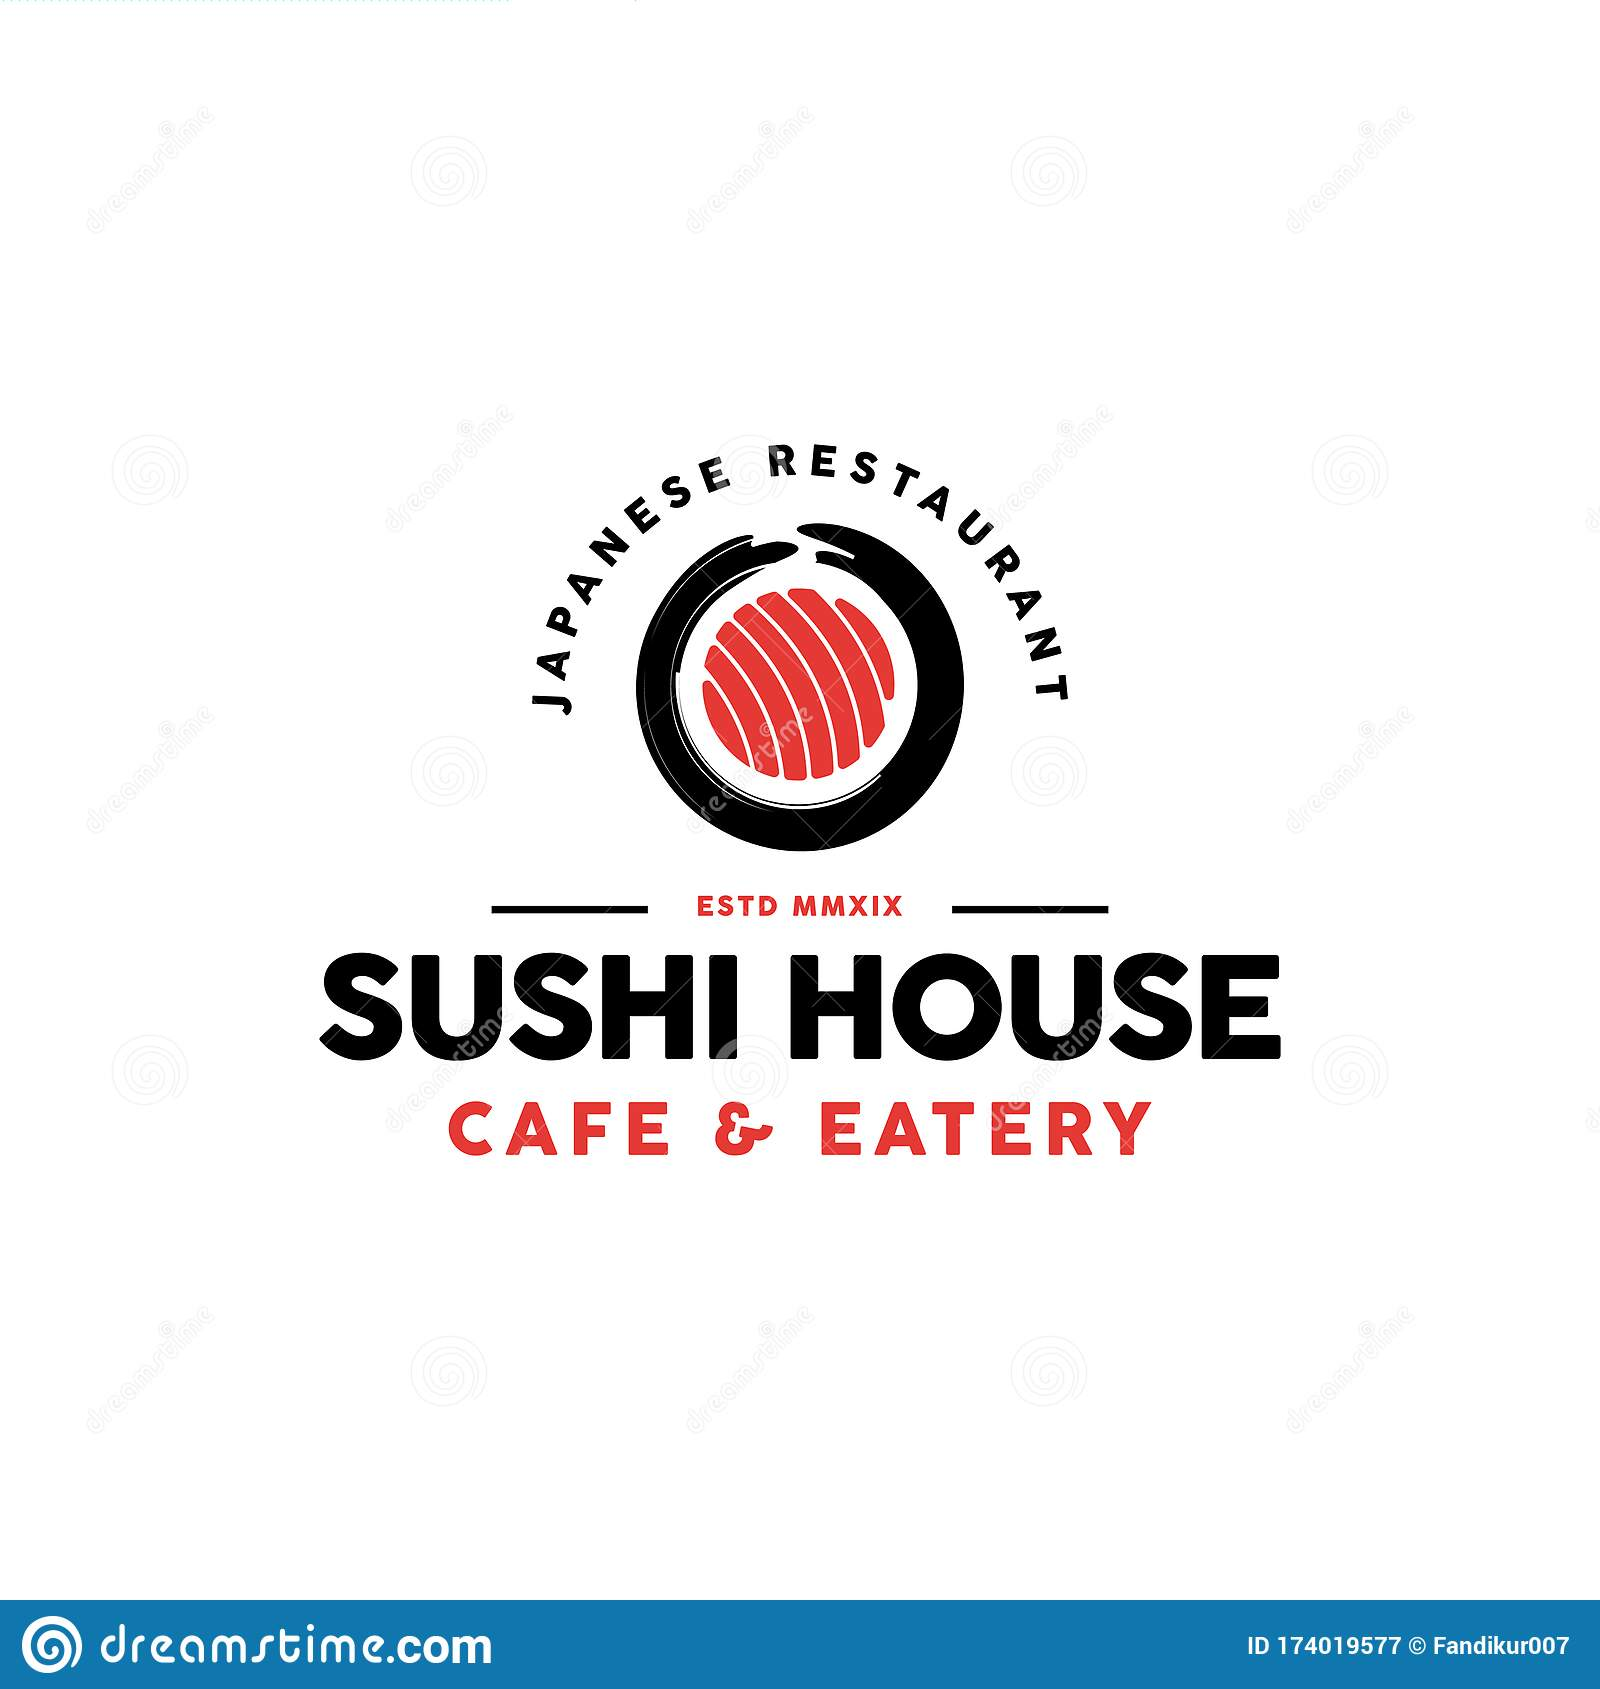 Sushi Restaurant Logo Design Inspiration Stock Vector Illustration Of Asia Abstract 174019577